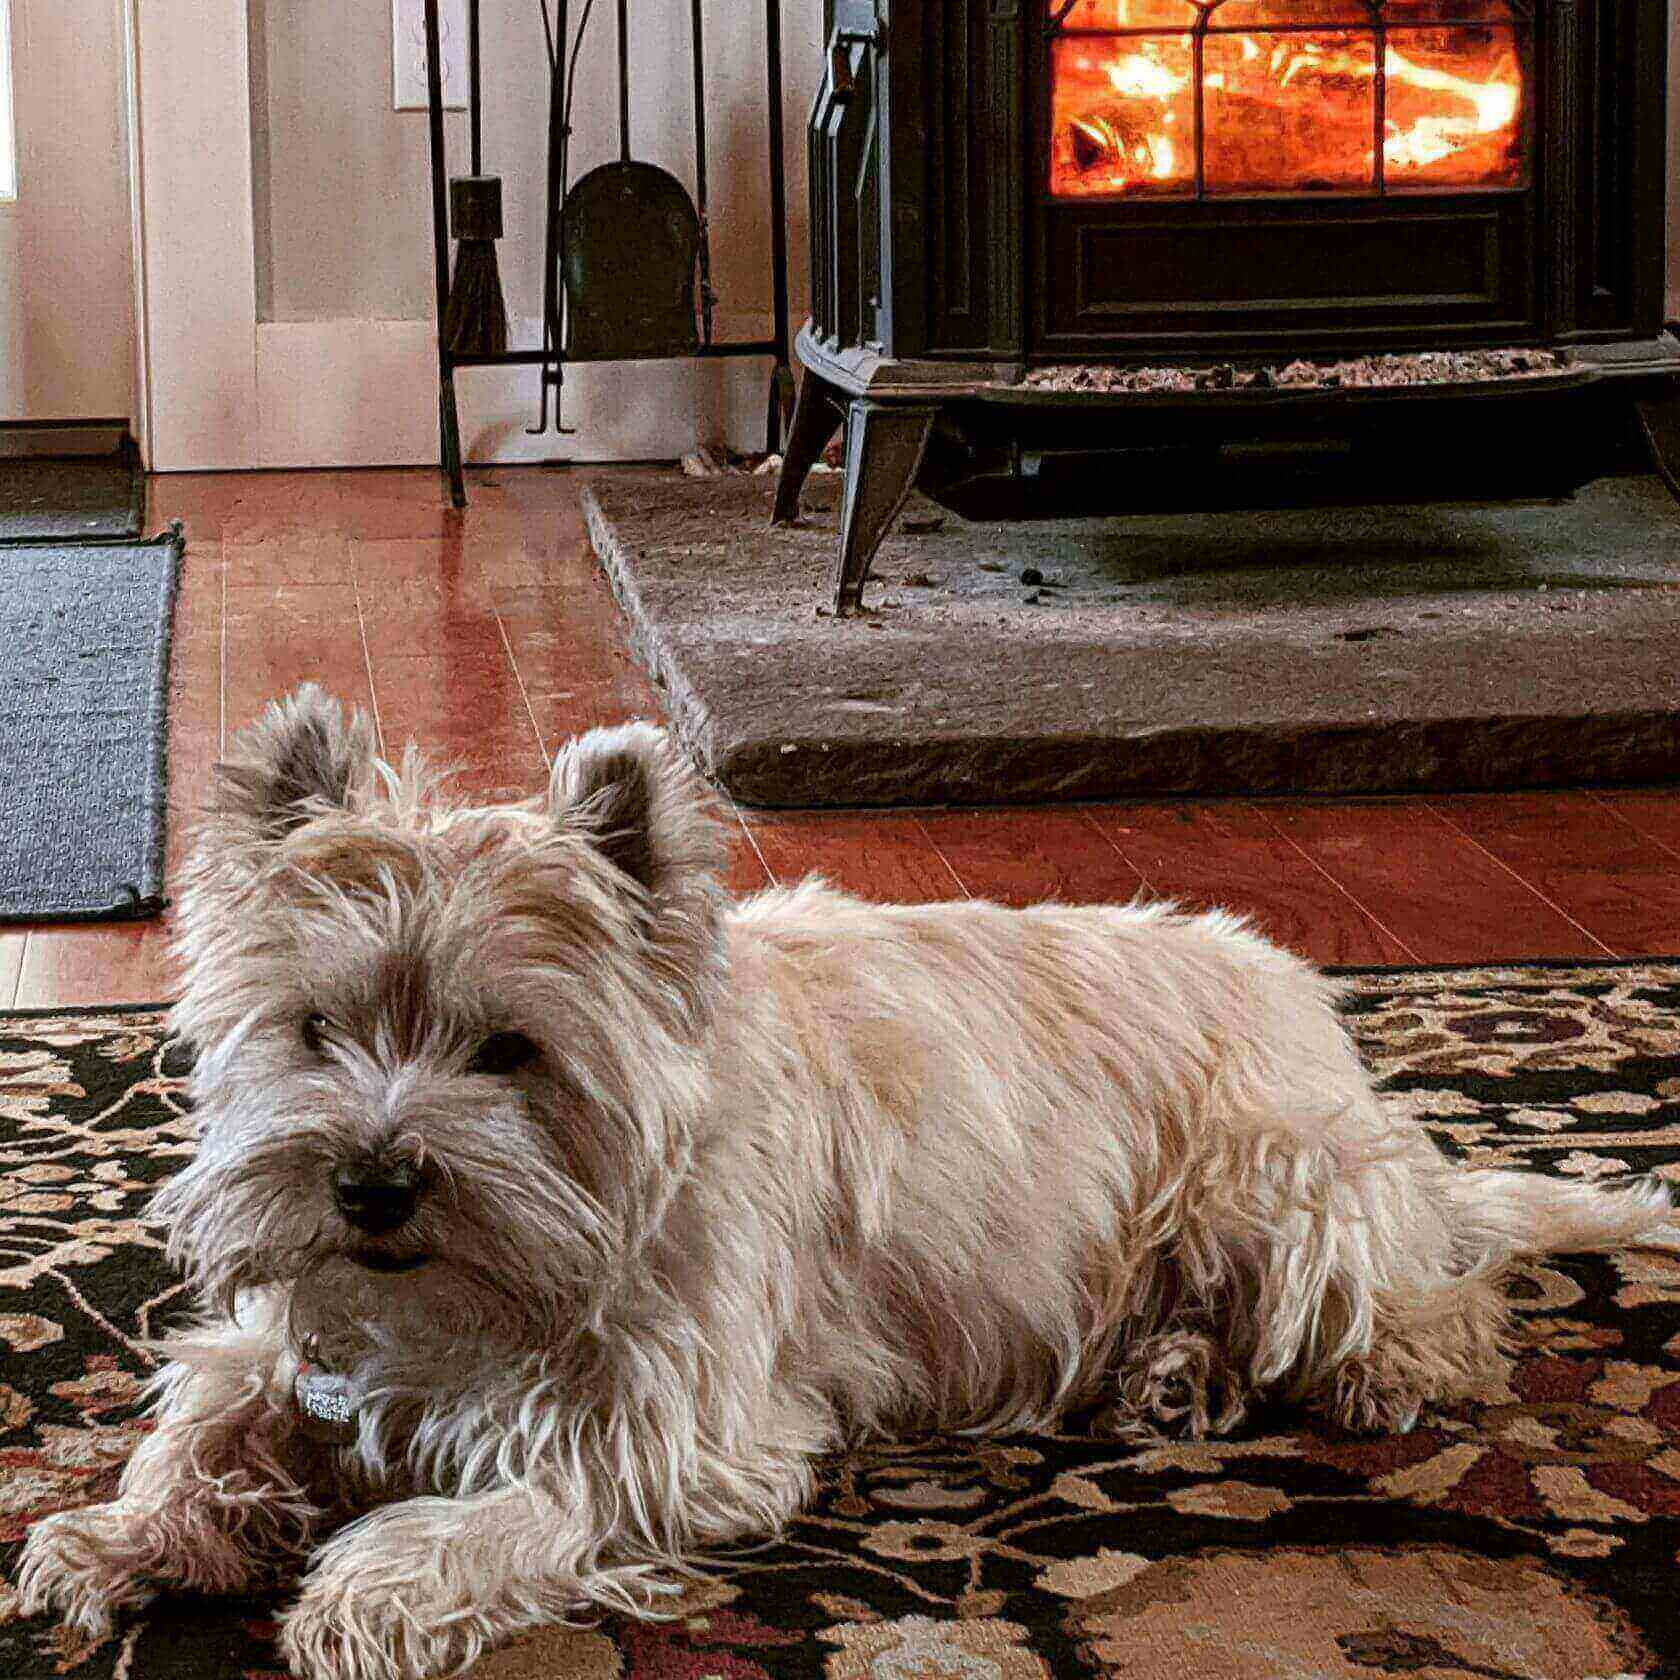 Finn the dog by fireplace